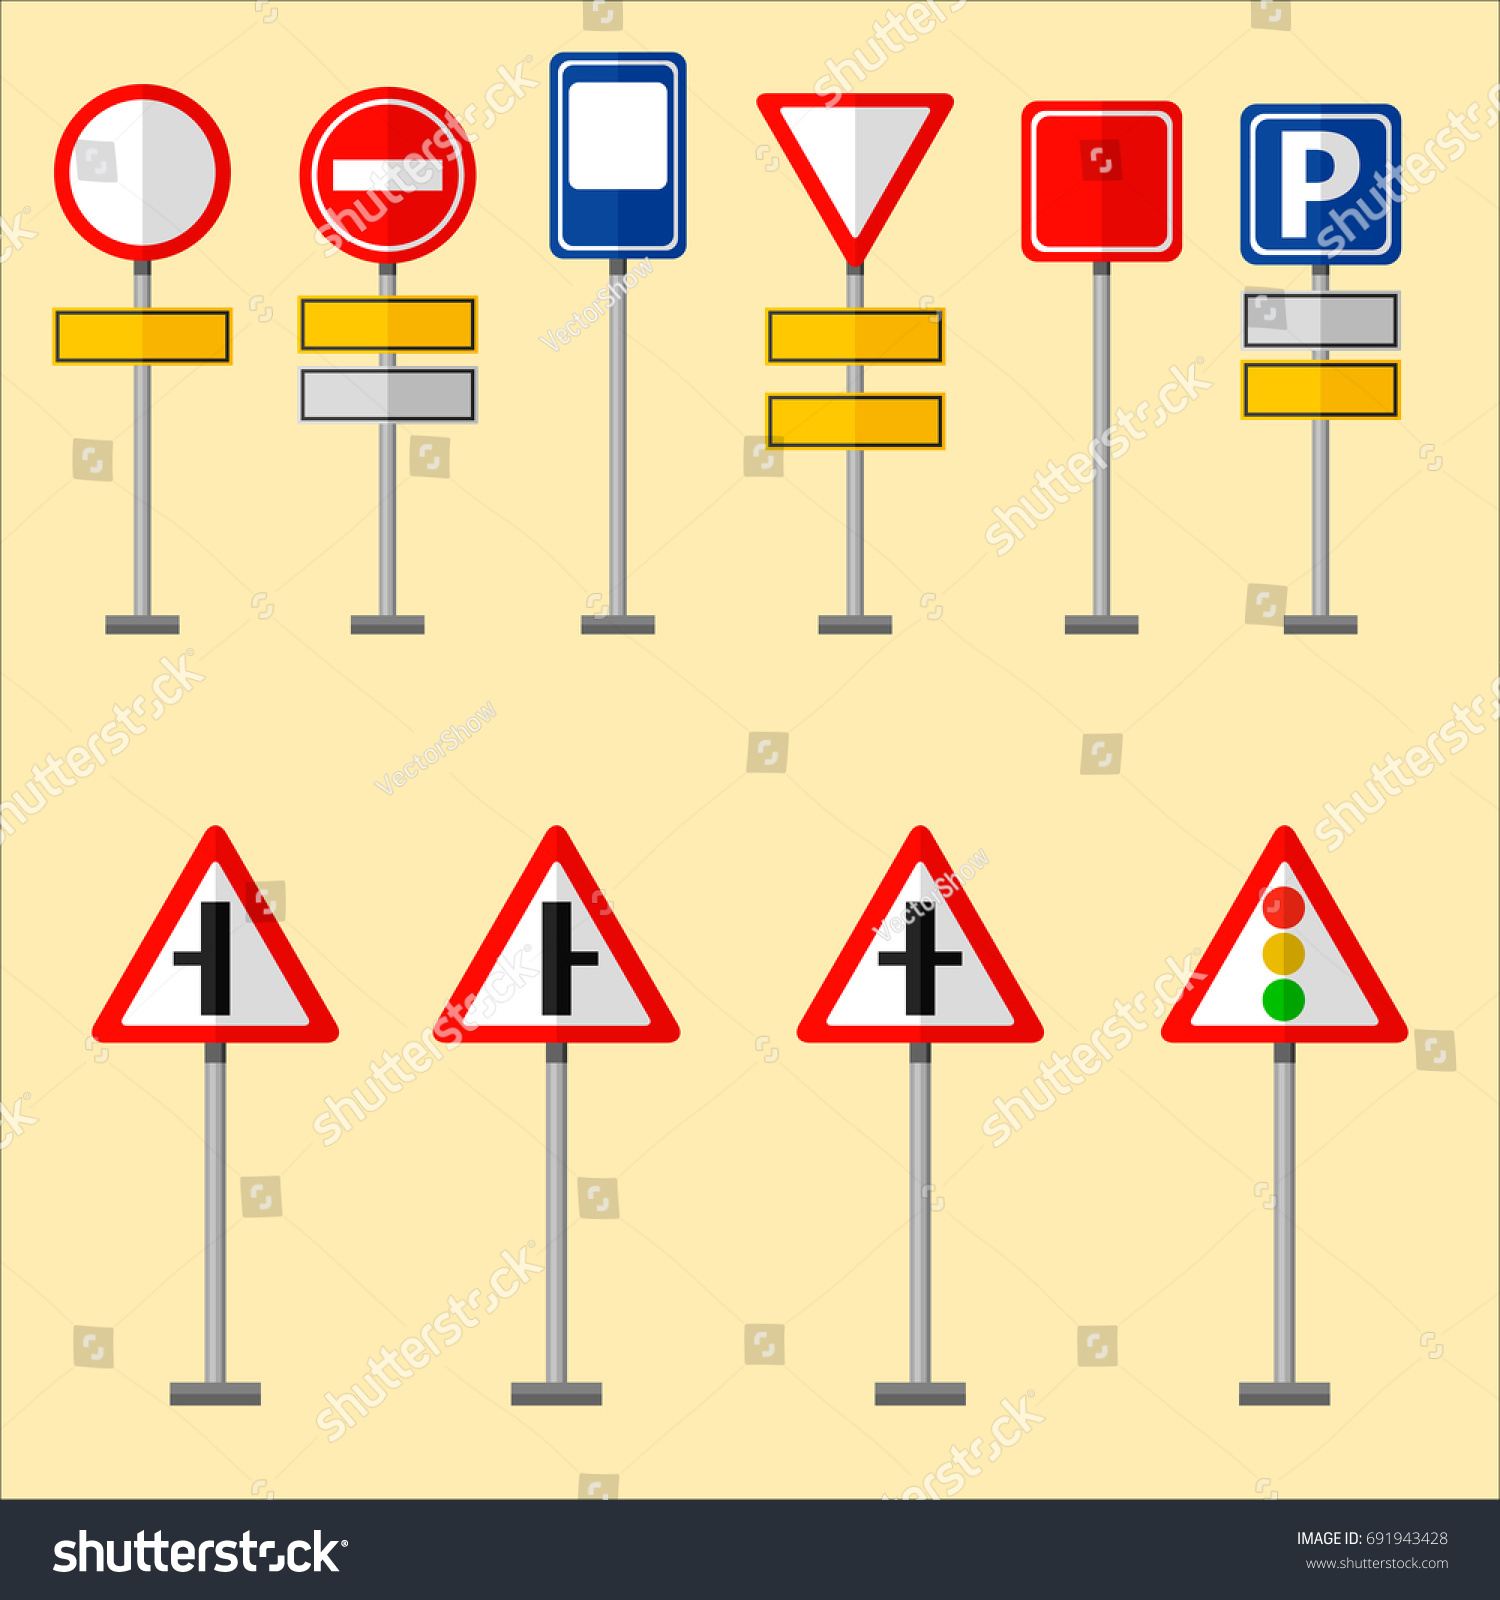 Road Symbols Traffic Signs Graphic Elements Stock Vector Royalty